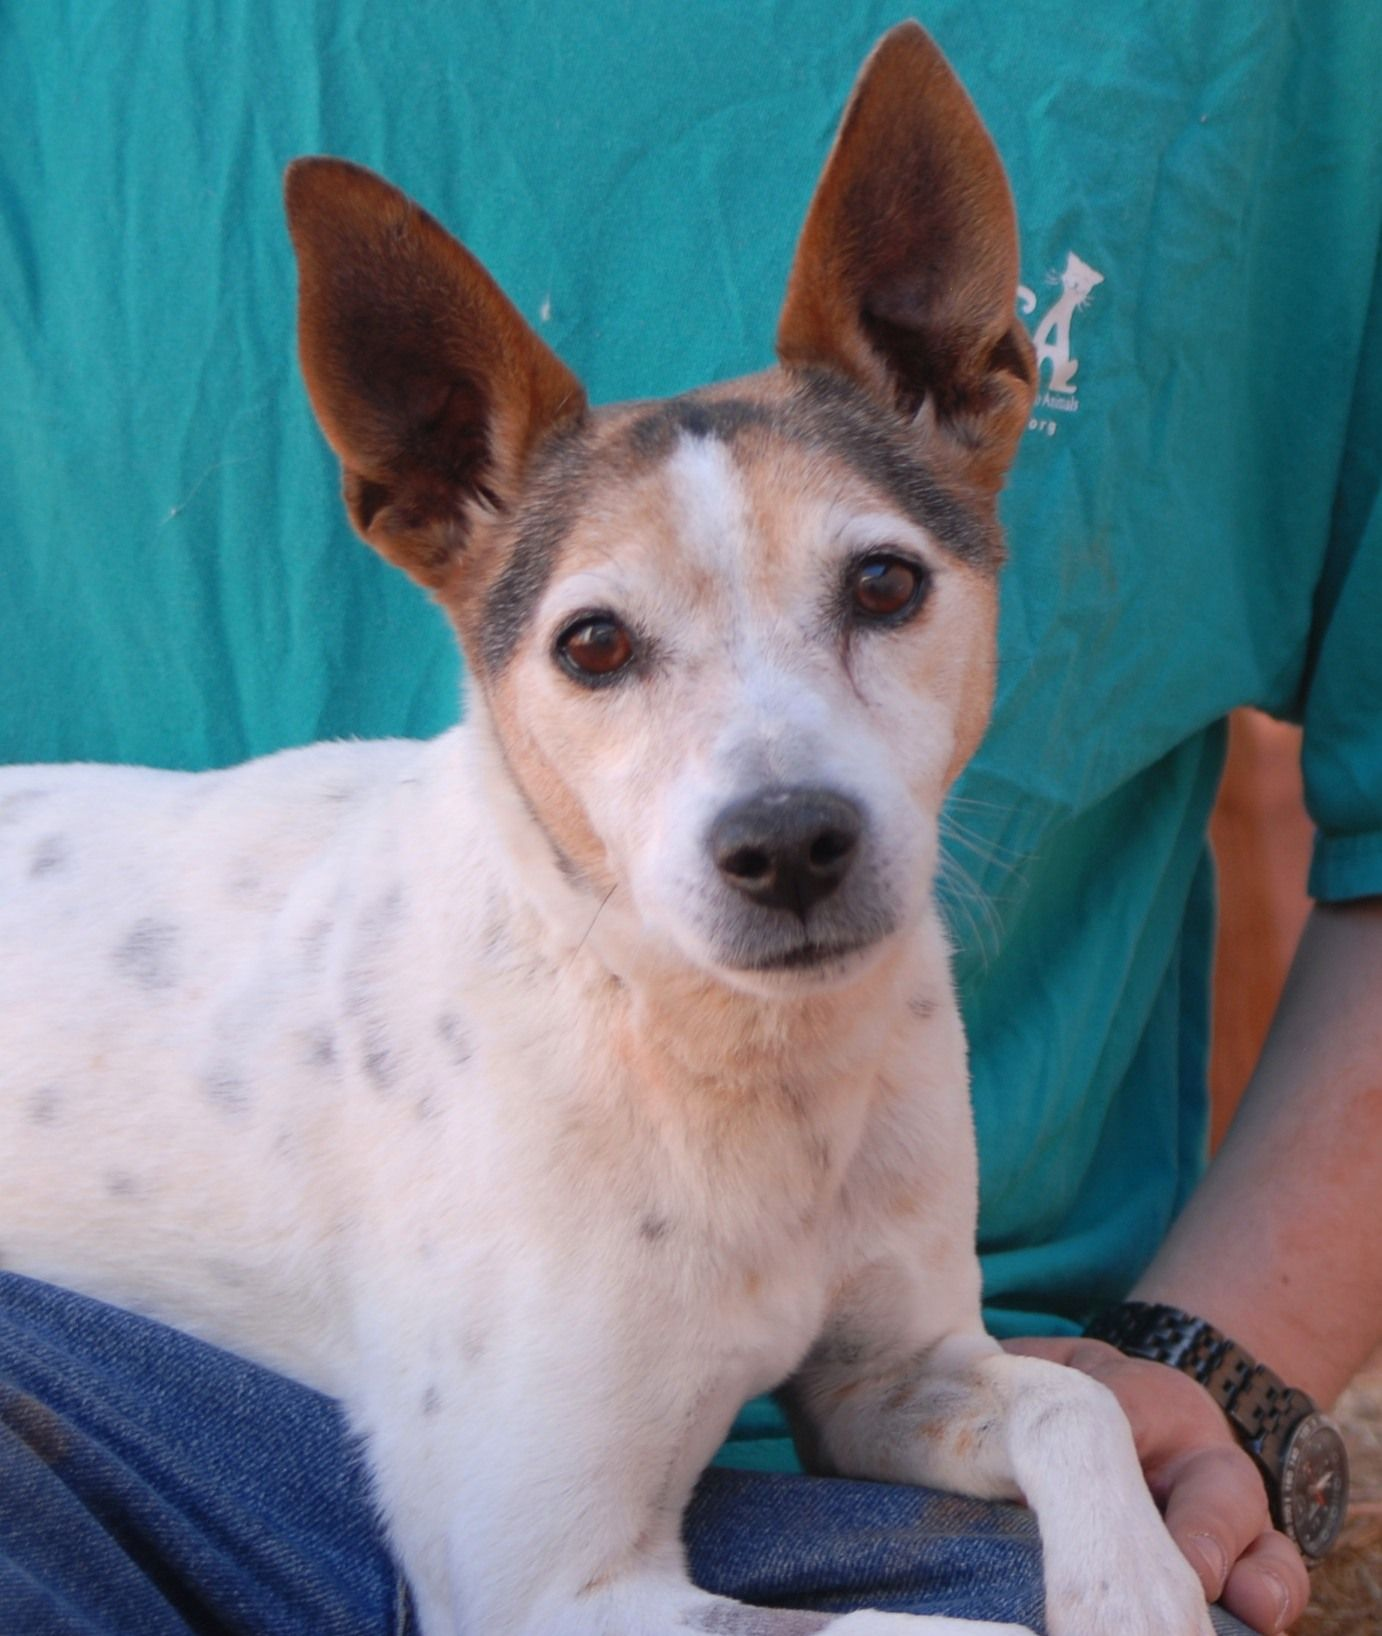 Stephen Asks For Your Consideration He Is A Jack Russell Terrier With An Exceptionally Sweet Disposition 10 Years Neutere Dog Adoption Animals Domestic Dog